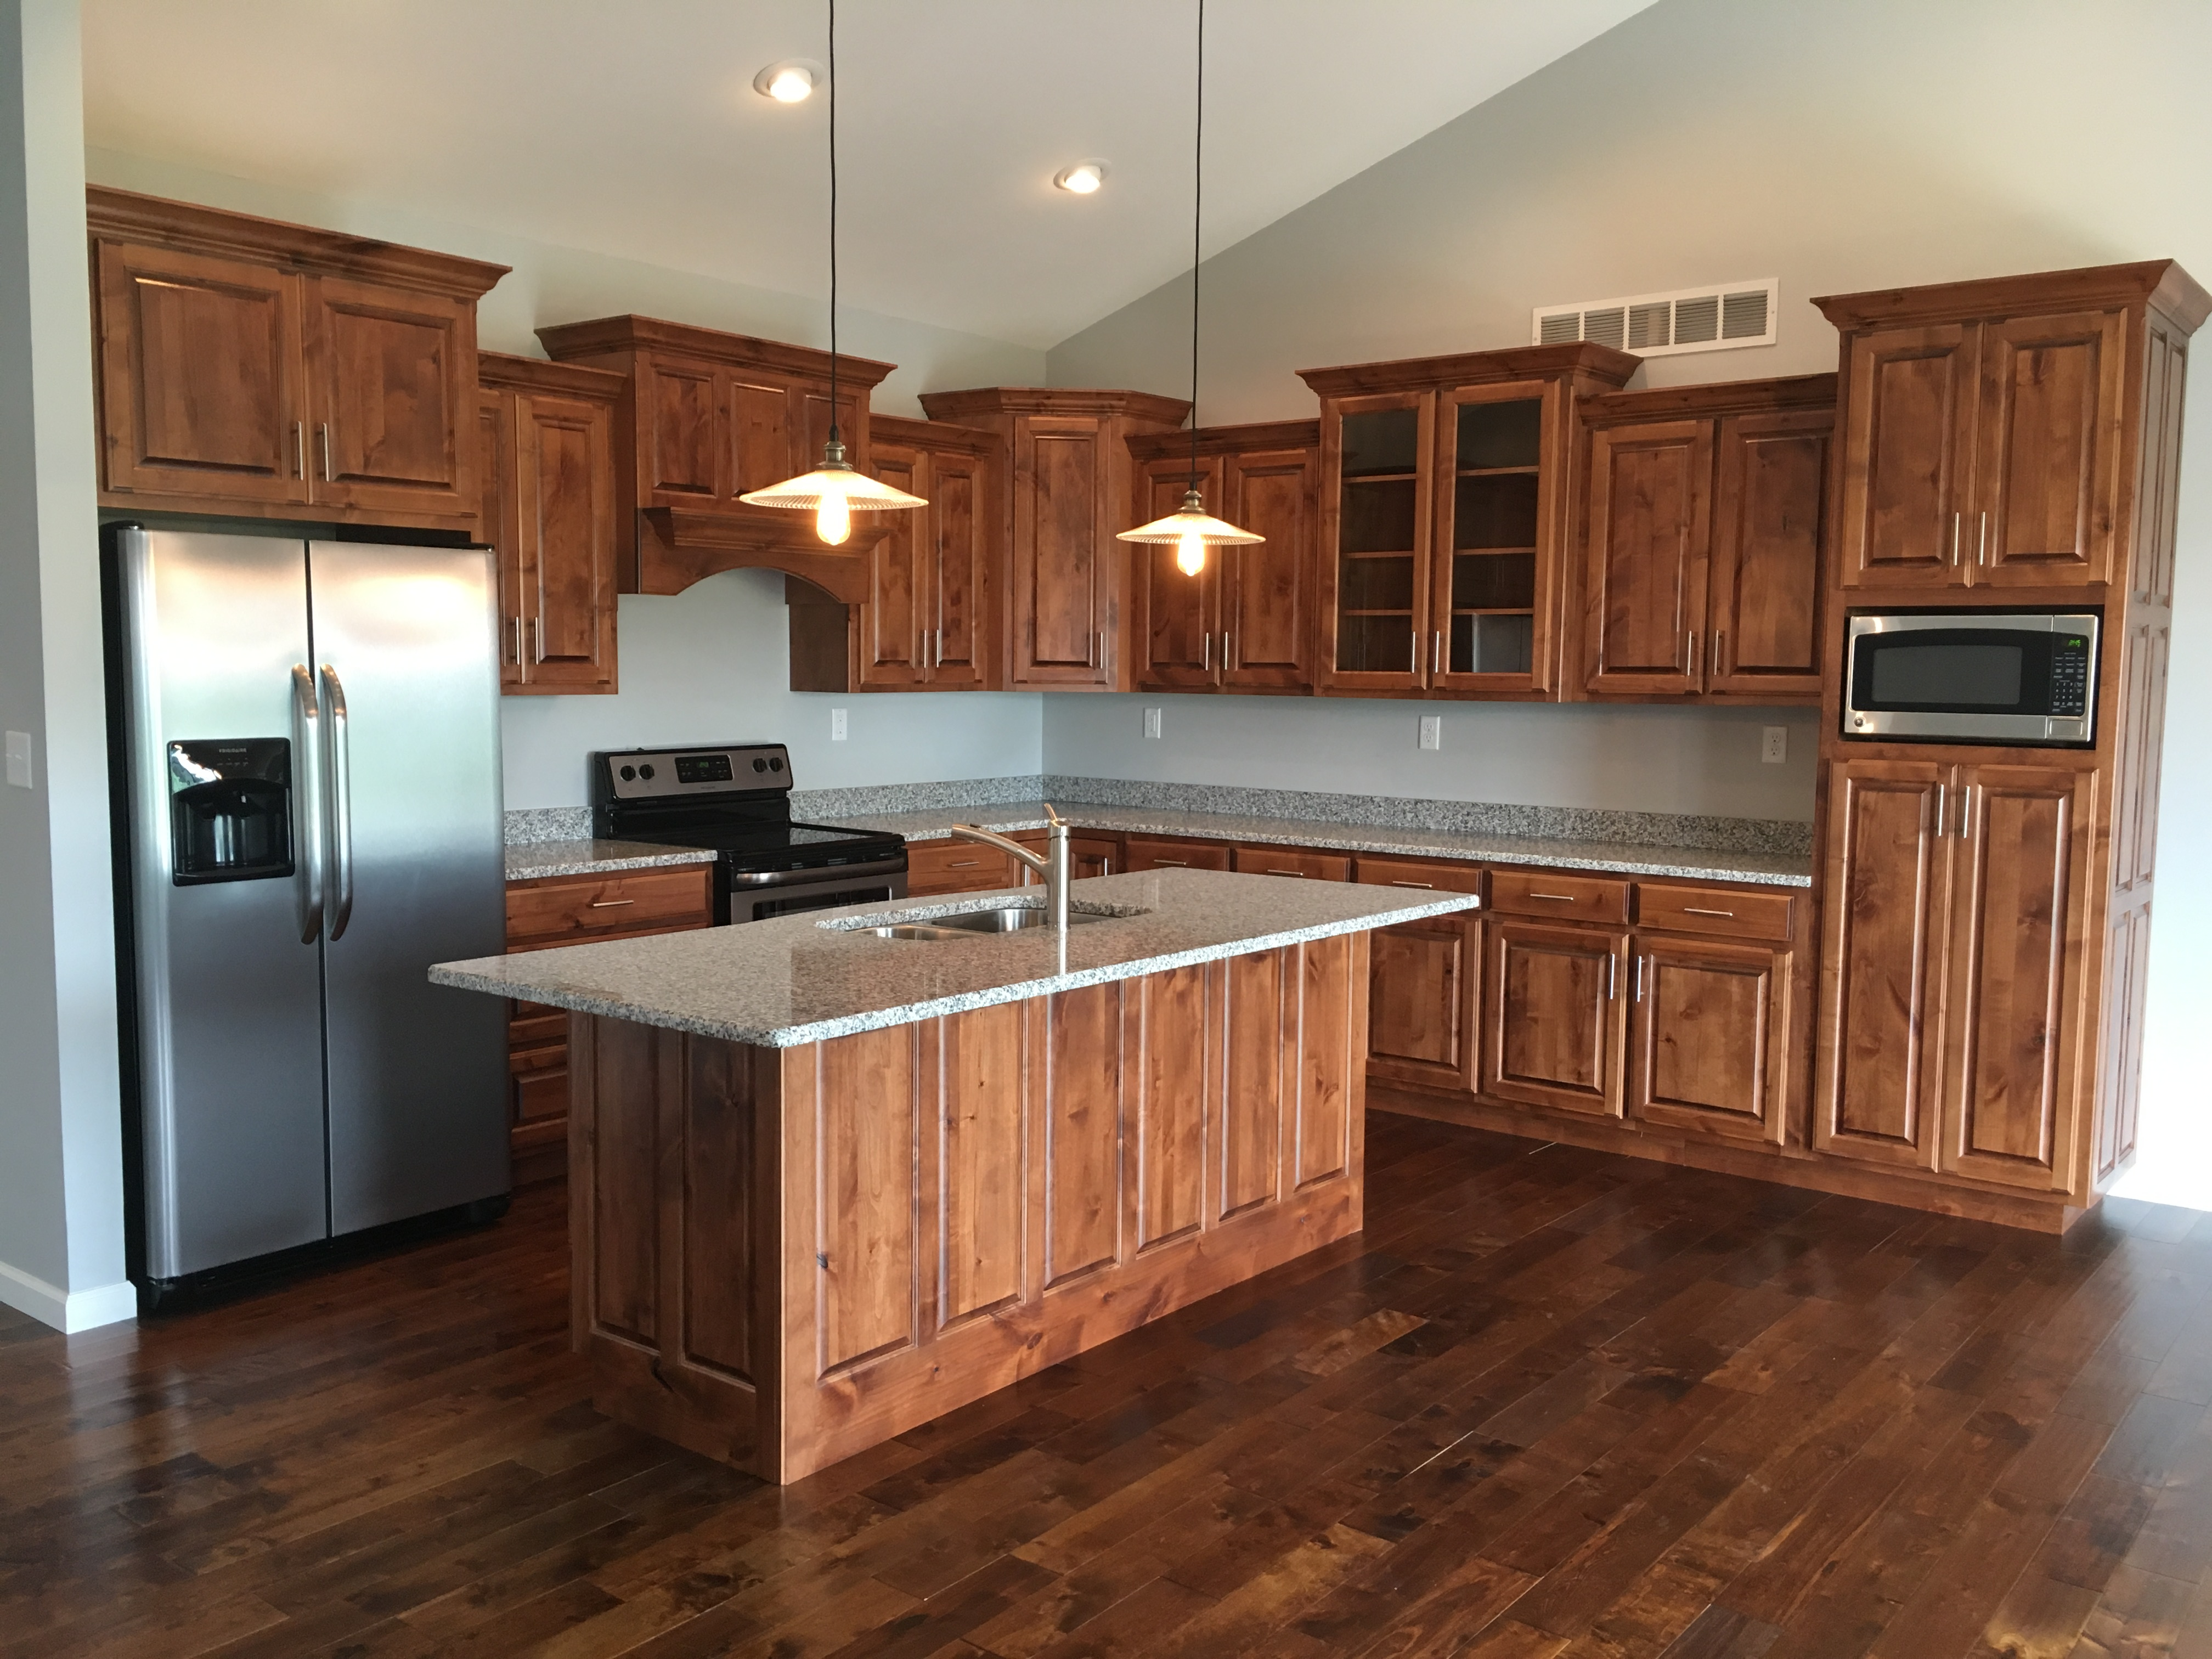 Kitchen with custom-made cabinetry